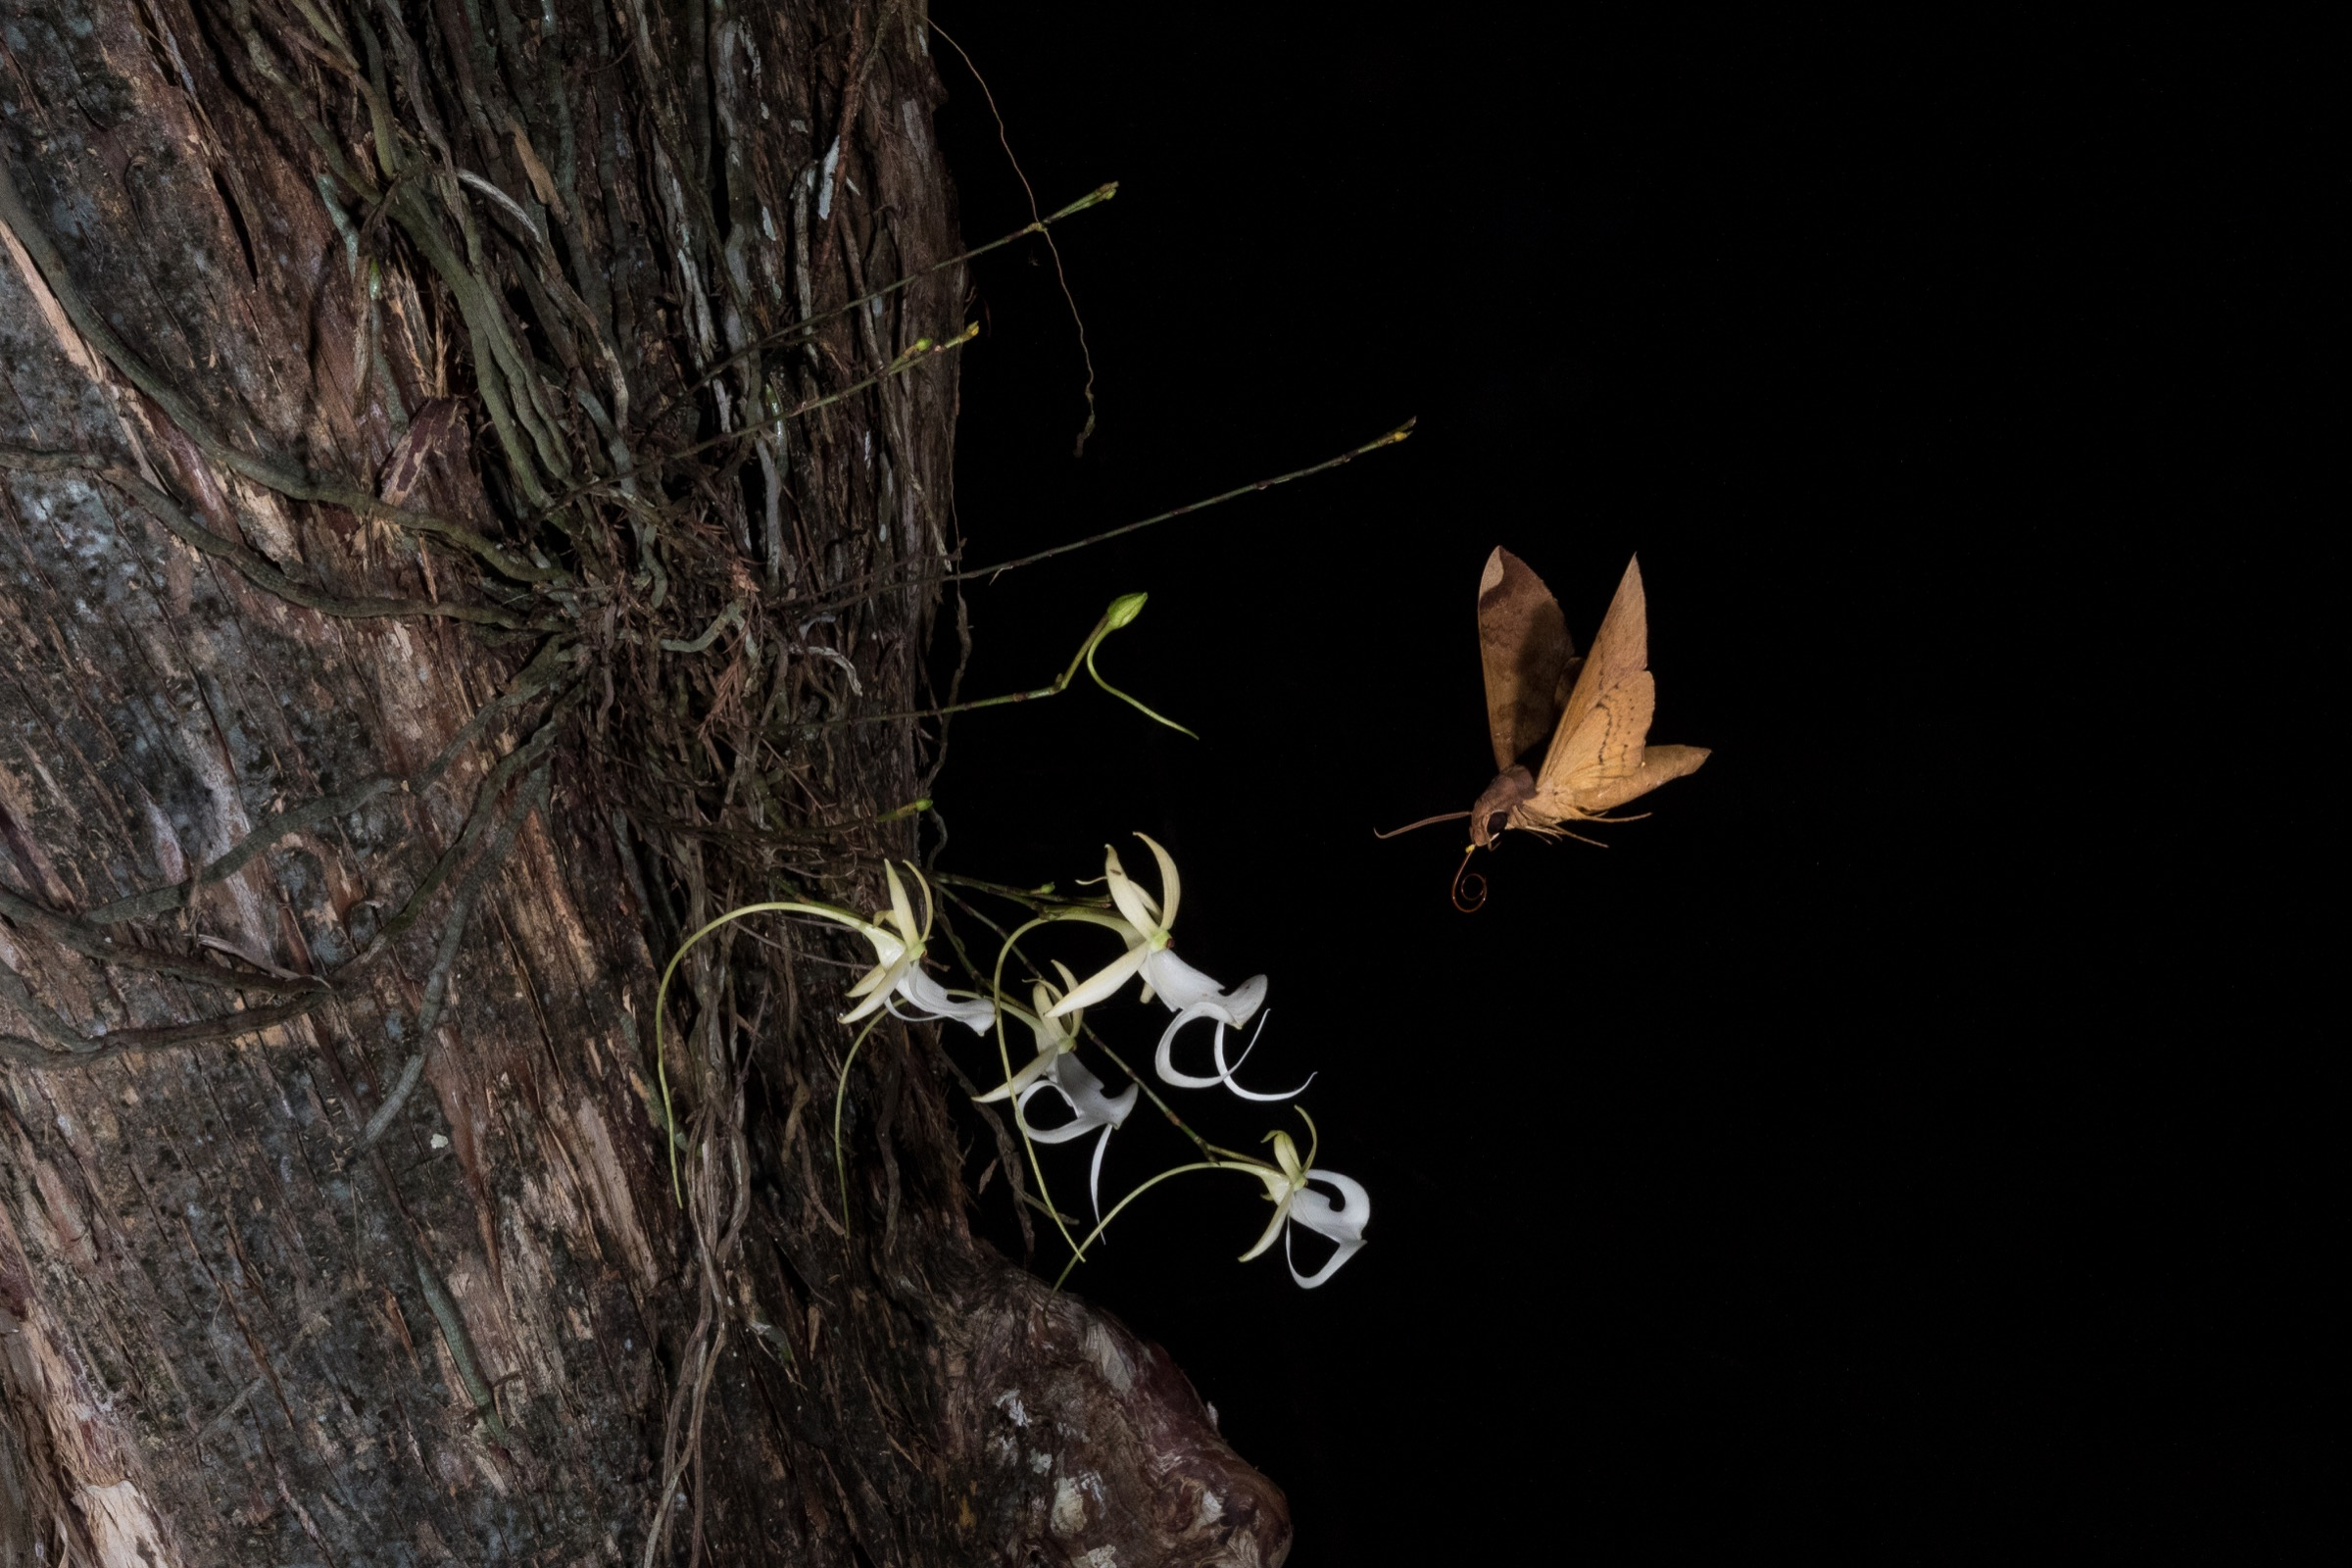 A fig sphinx moth hovers over a ghost orchid.A yellow pollinium (pollen cluster) is visible on the face of the moth. Photograph by Mac Stone.